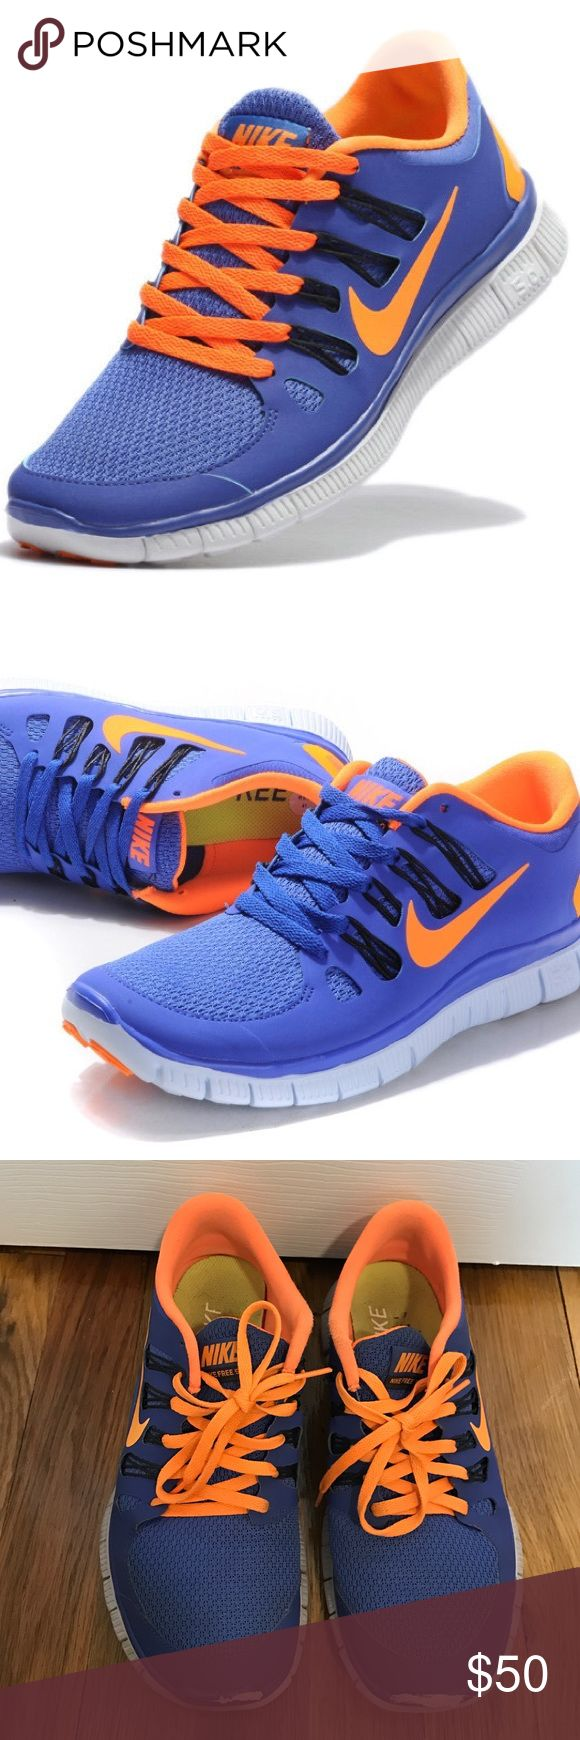 Women's Nike Free 5.0 Purple & Orange Nike Free 5.0 Women's Sneakers. There is some scuffing on the front of the sneakers but other than that in great condition! Nike Shoes Athletic Shoes